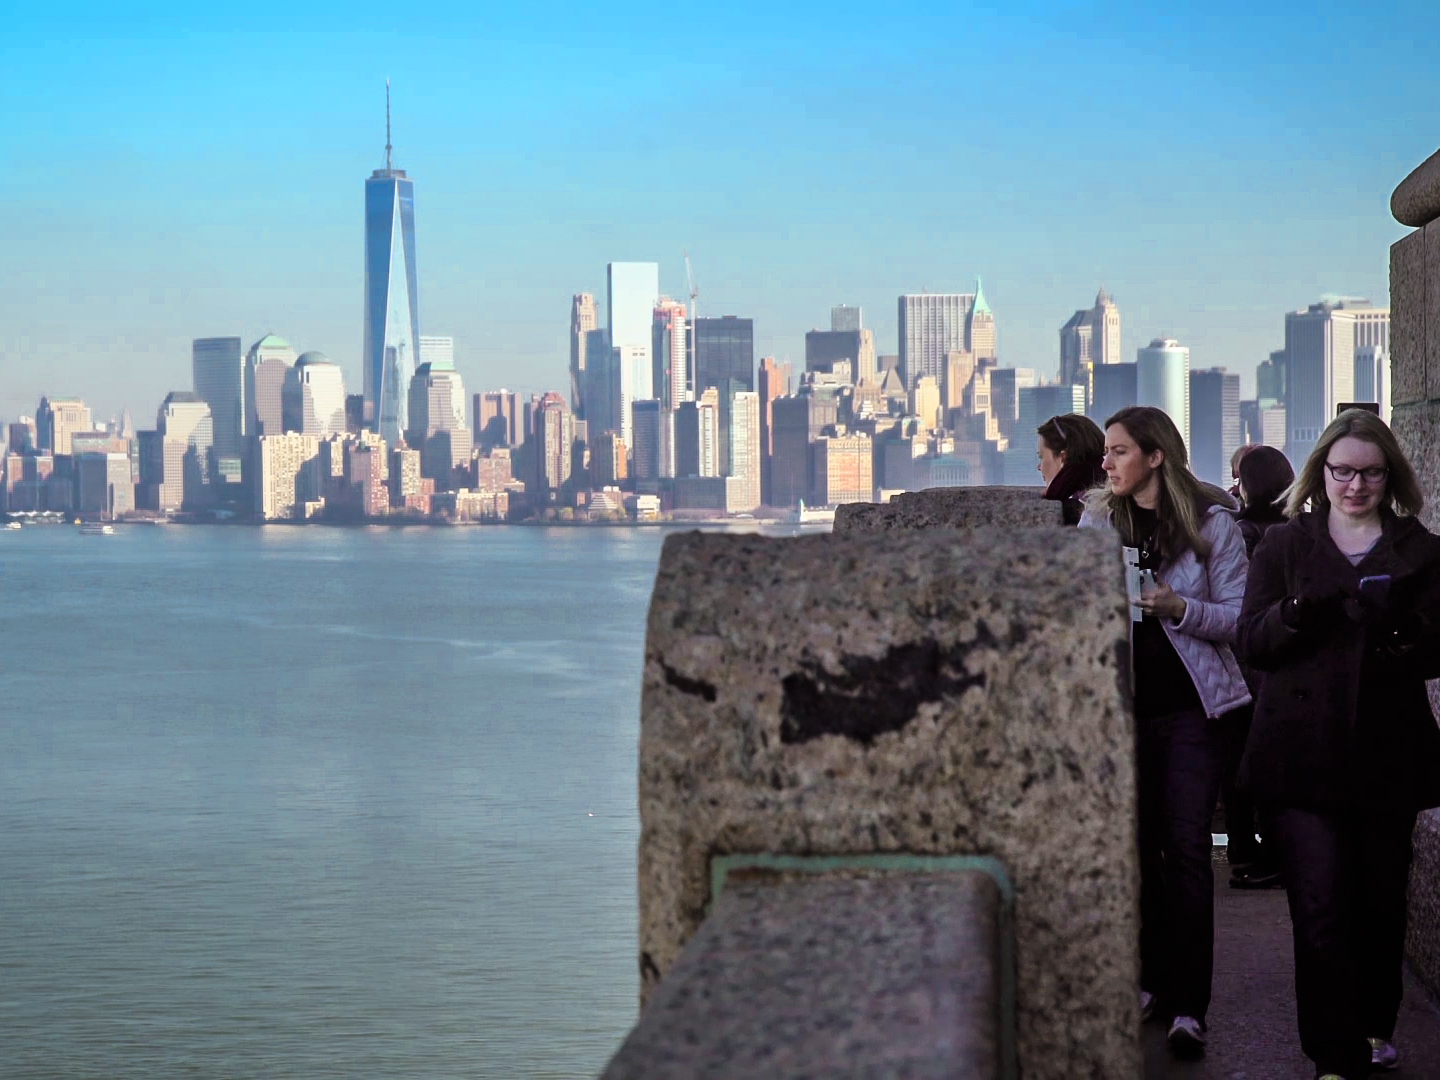 View from the pedestal at the Statue of Liberty